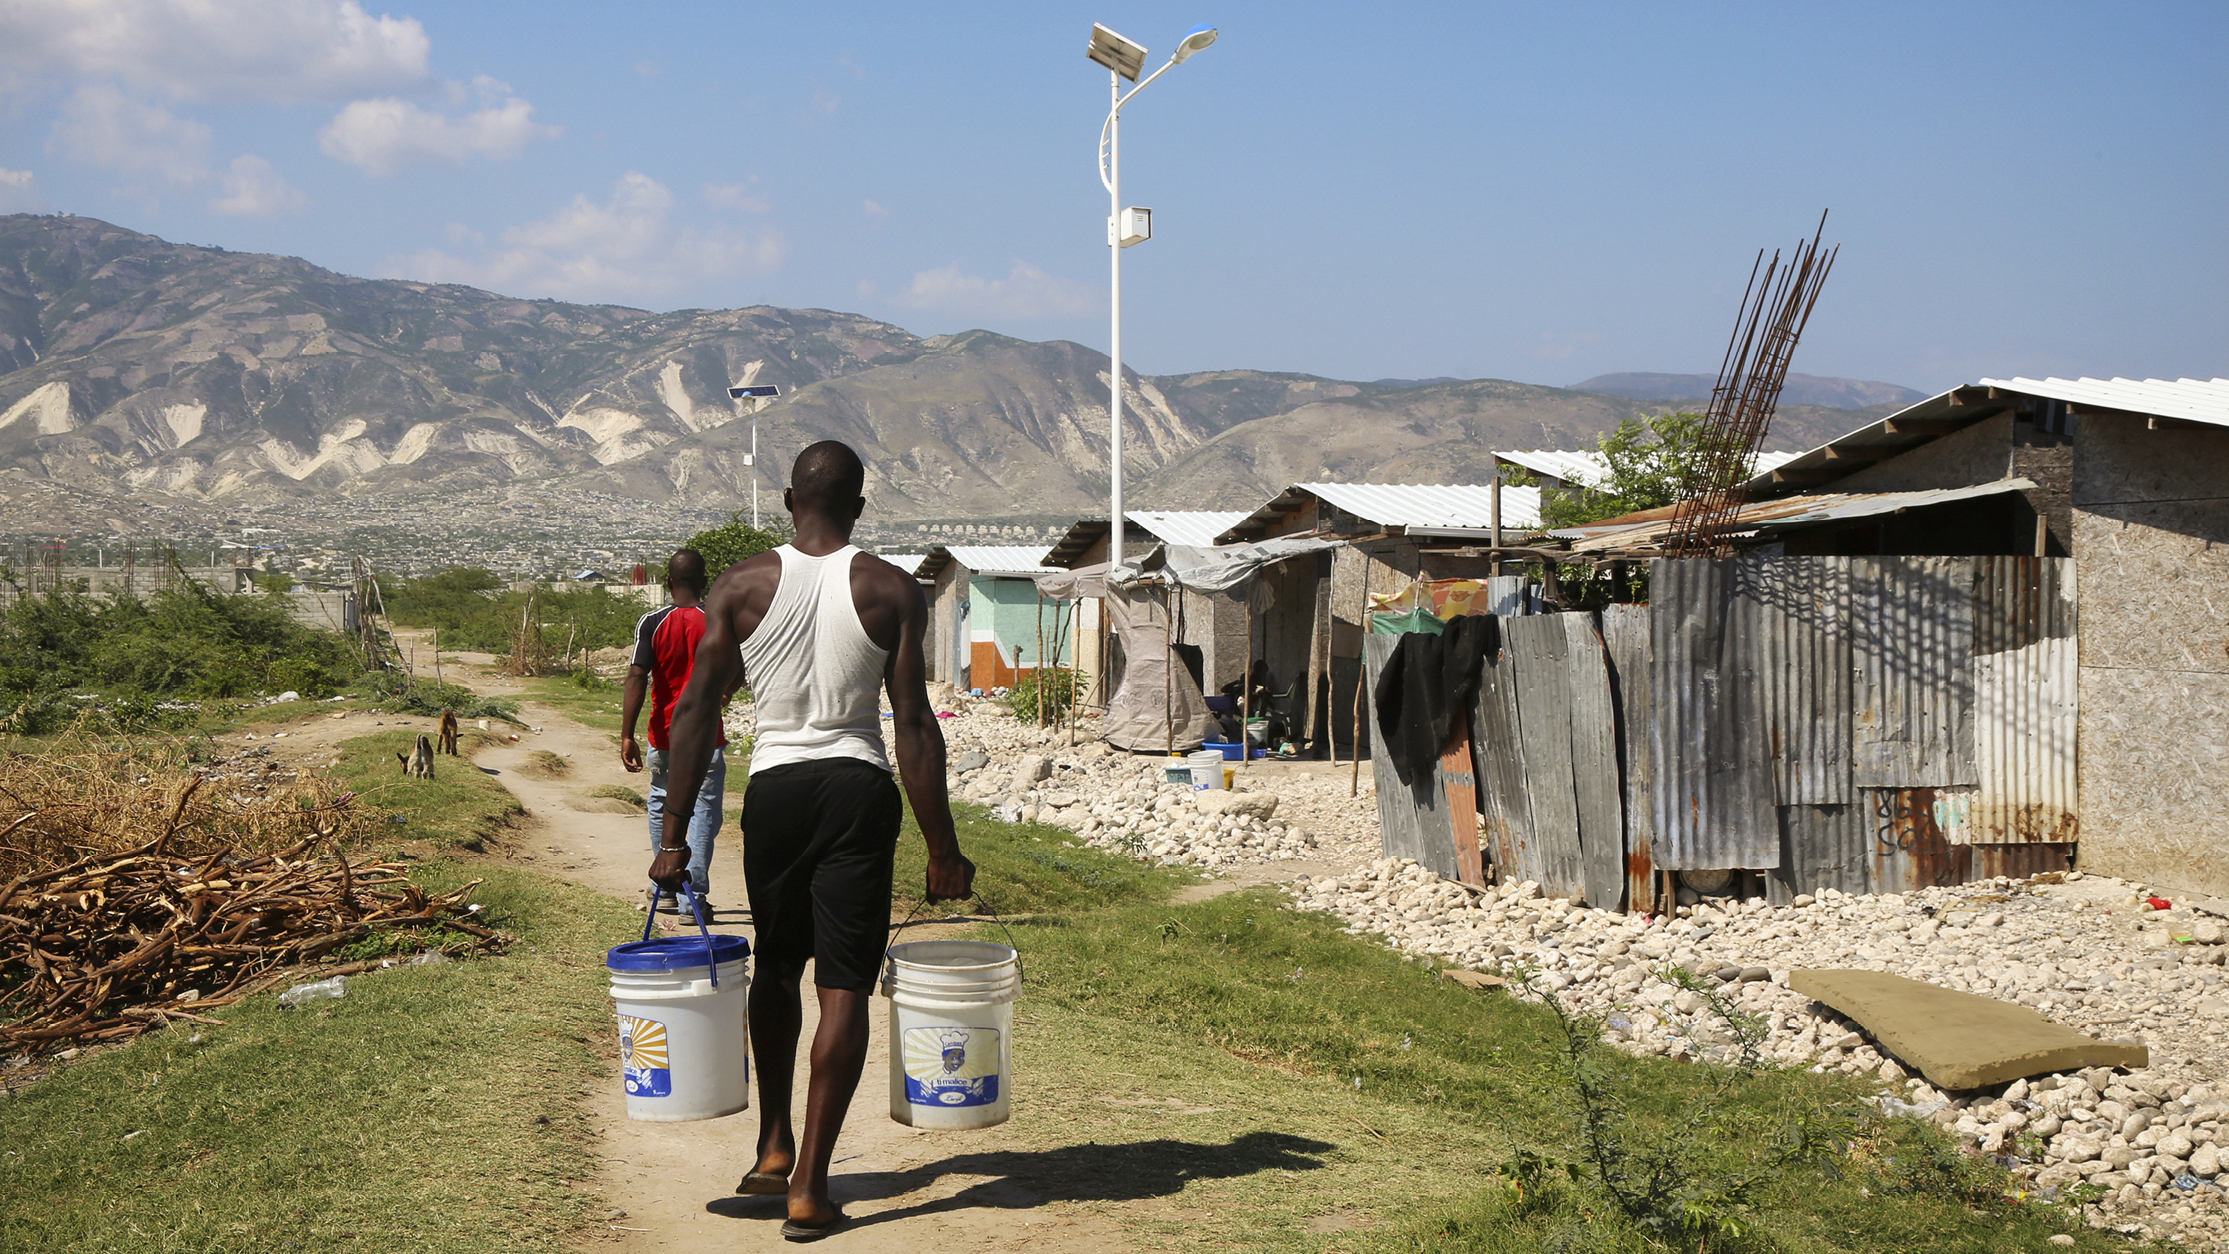 When Disaster Strikes, Aid Groups Often Strike Out. Why?